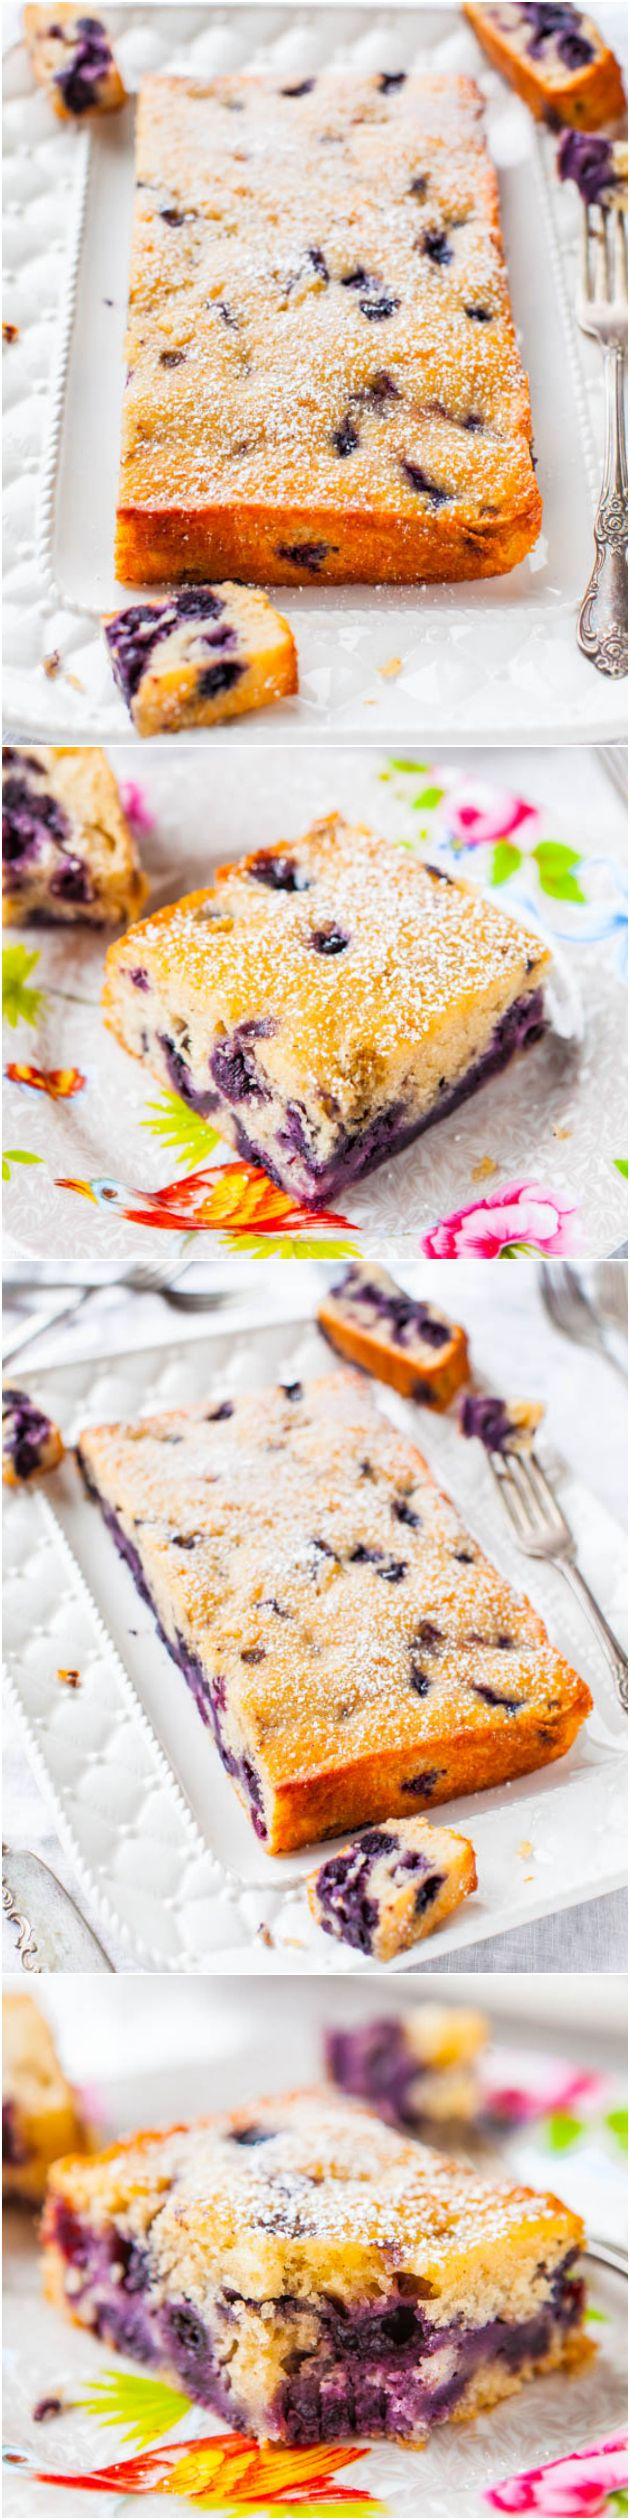 Blueberry Muffin and Buttermilk Pancakes Cake - Soft, fluffy & tastes like a big buttermilk pancake that ran into a blueberry muffin on the way to the oven! Easy, one-bowl, no-mixer recipe!